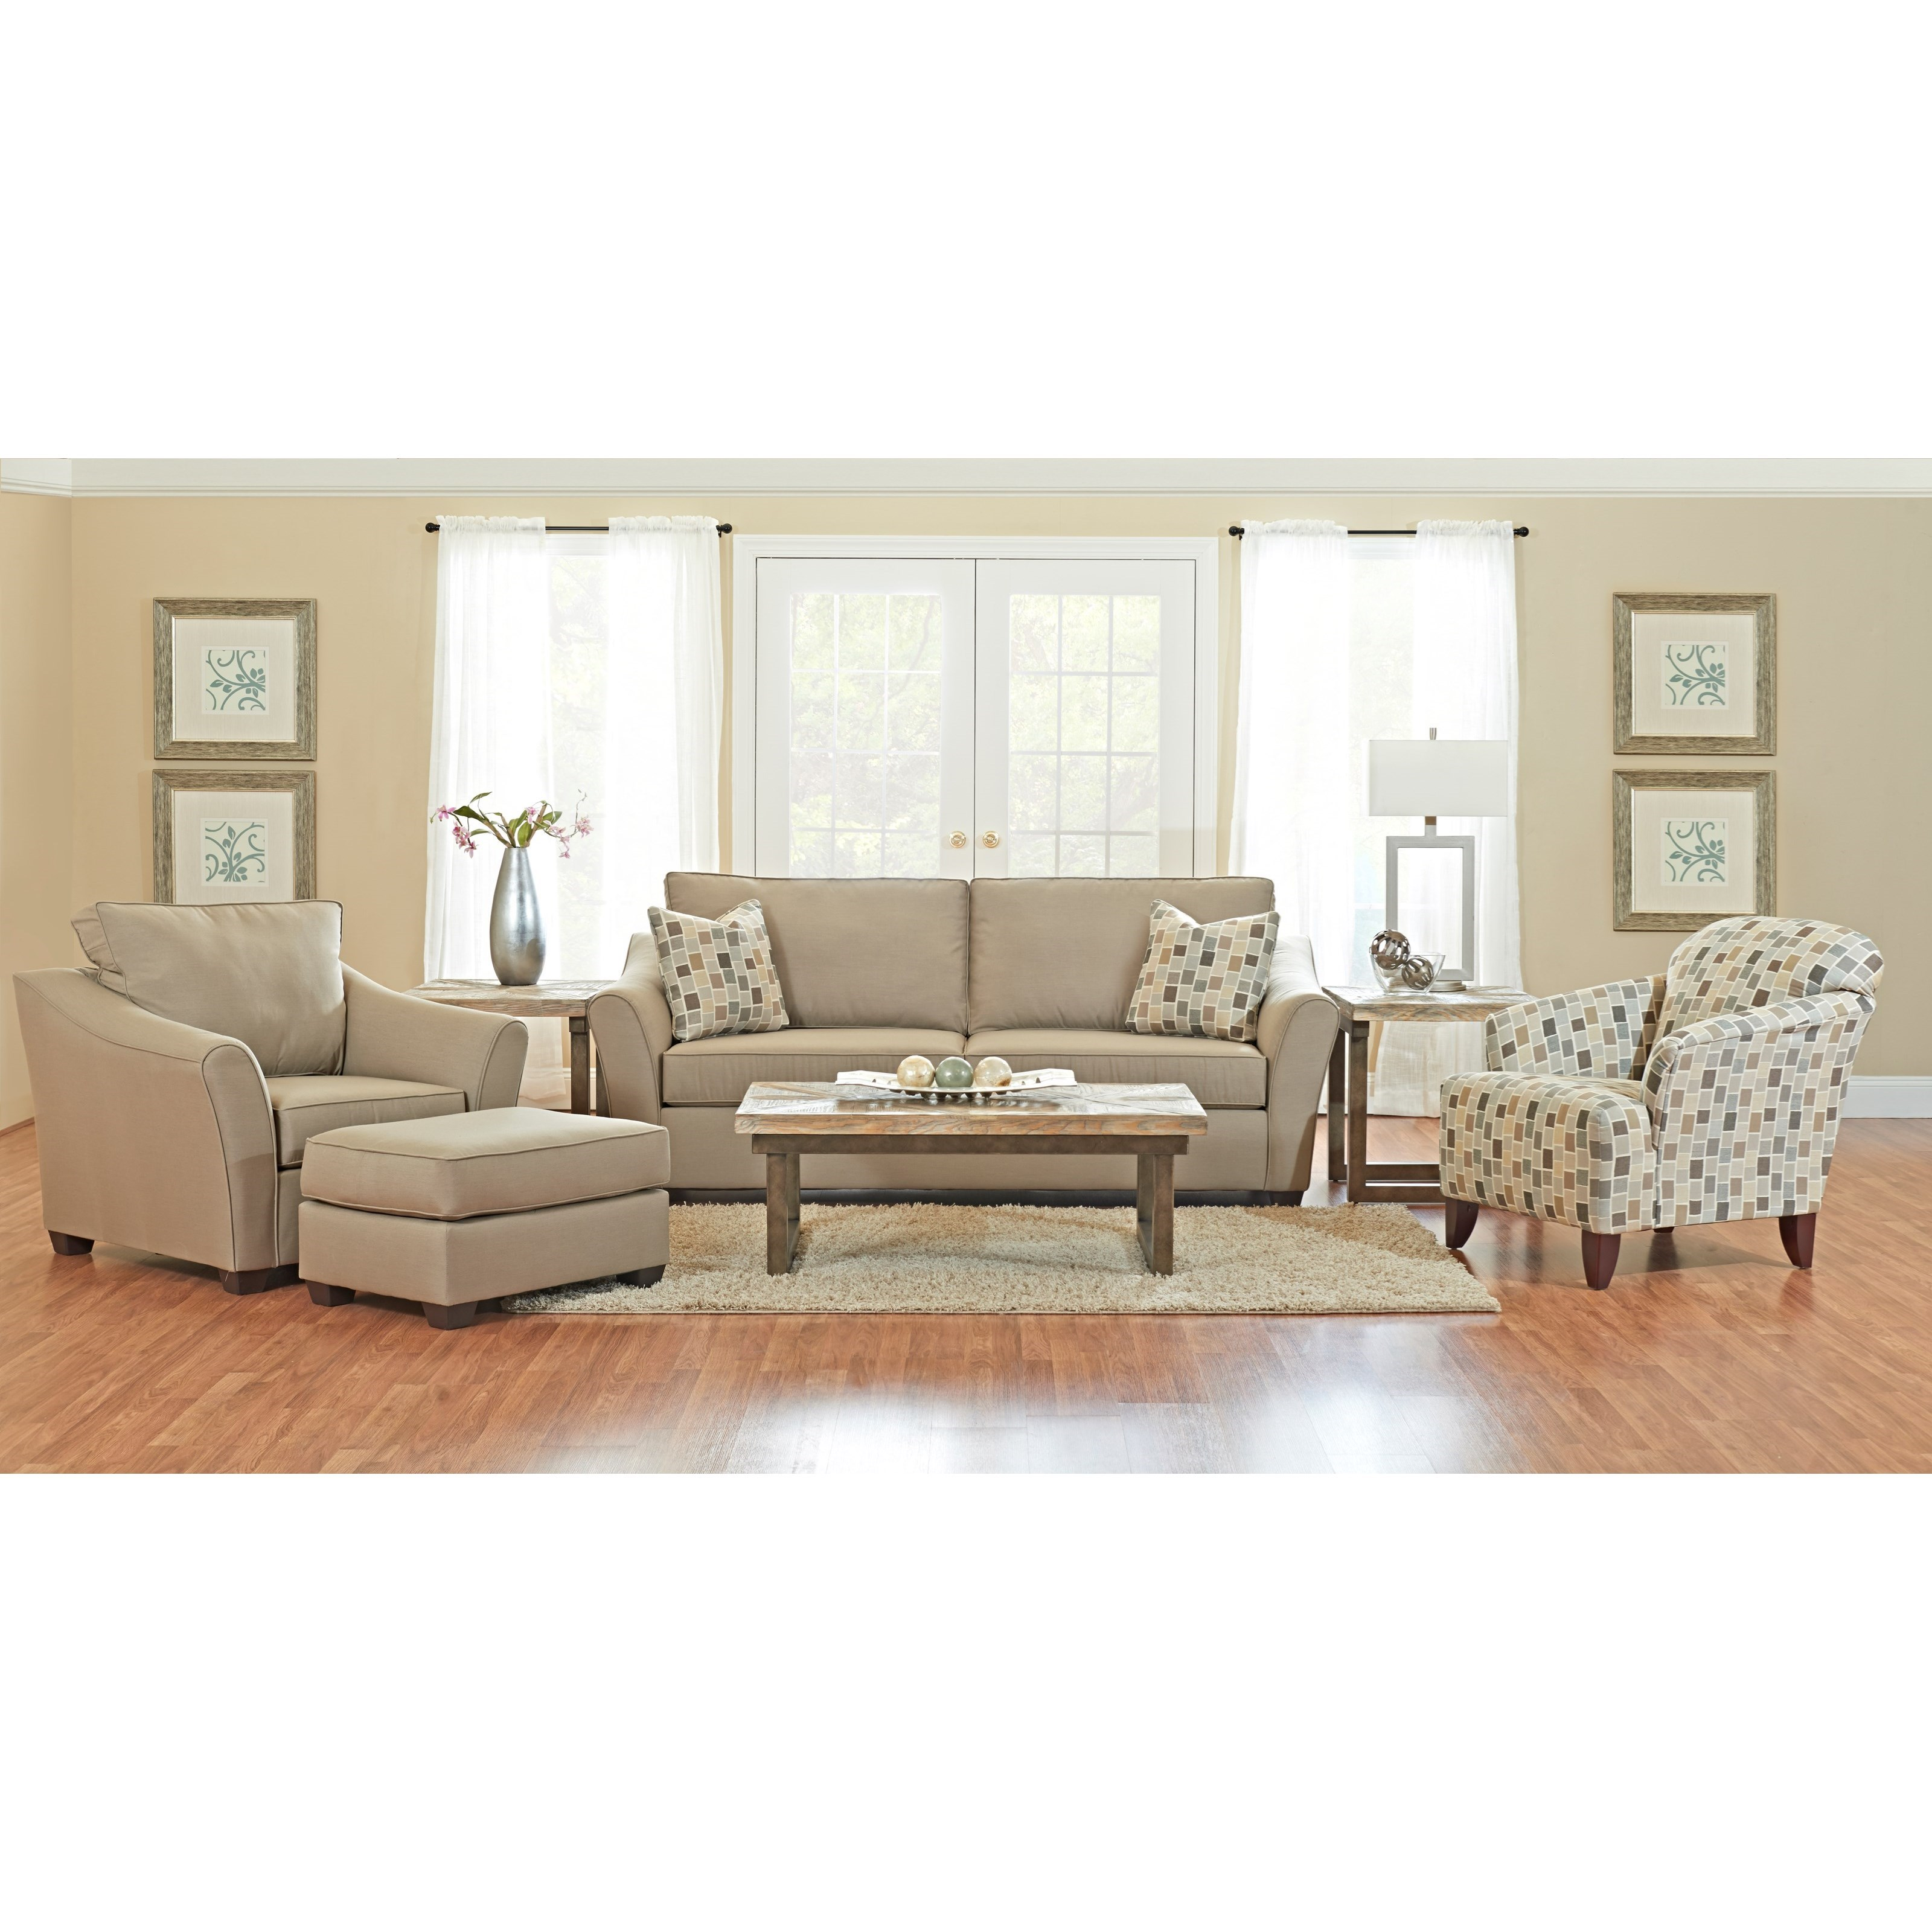 Klaussner linville living room group value city for Living room furniture groups